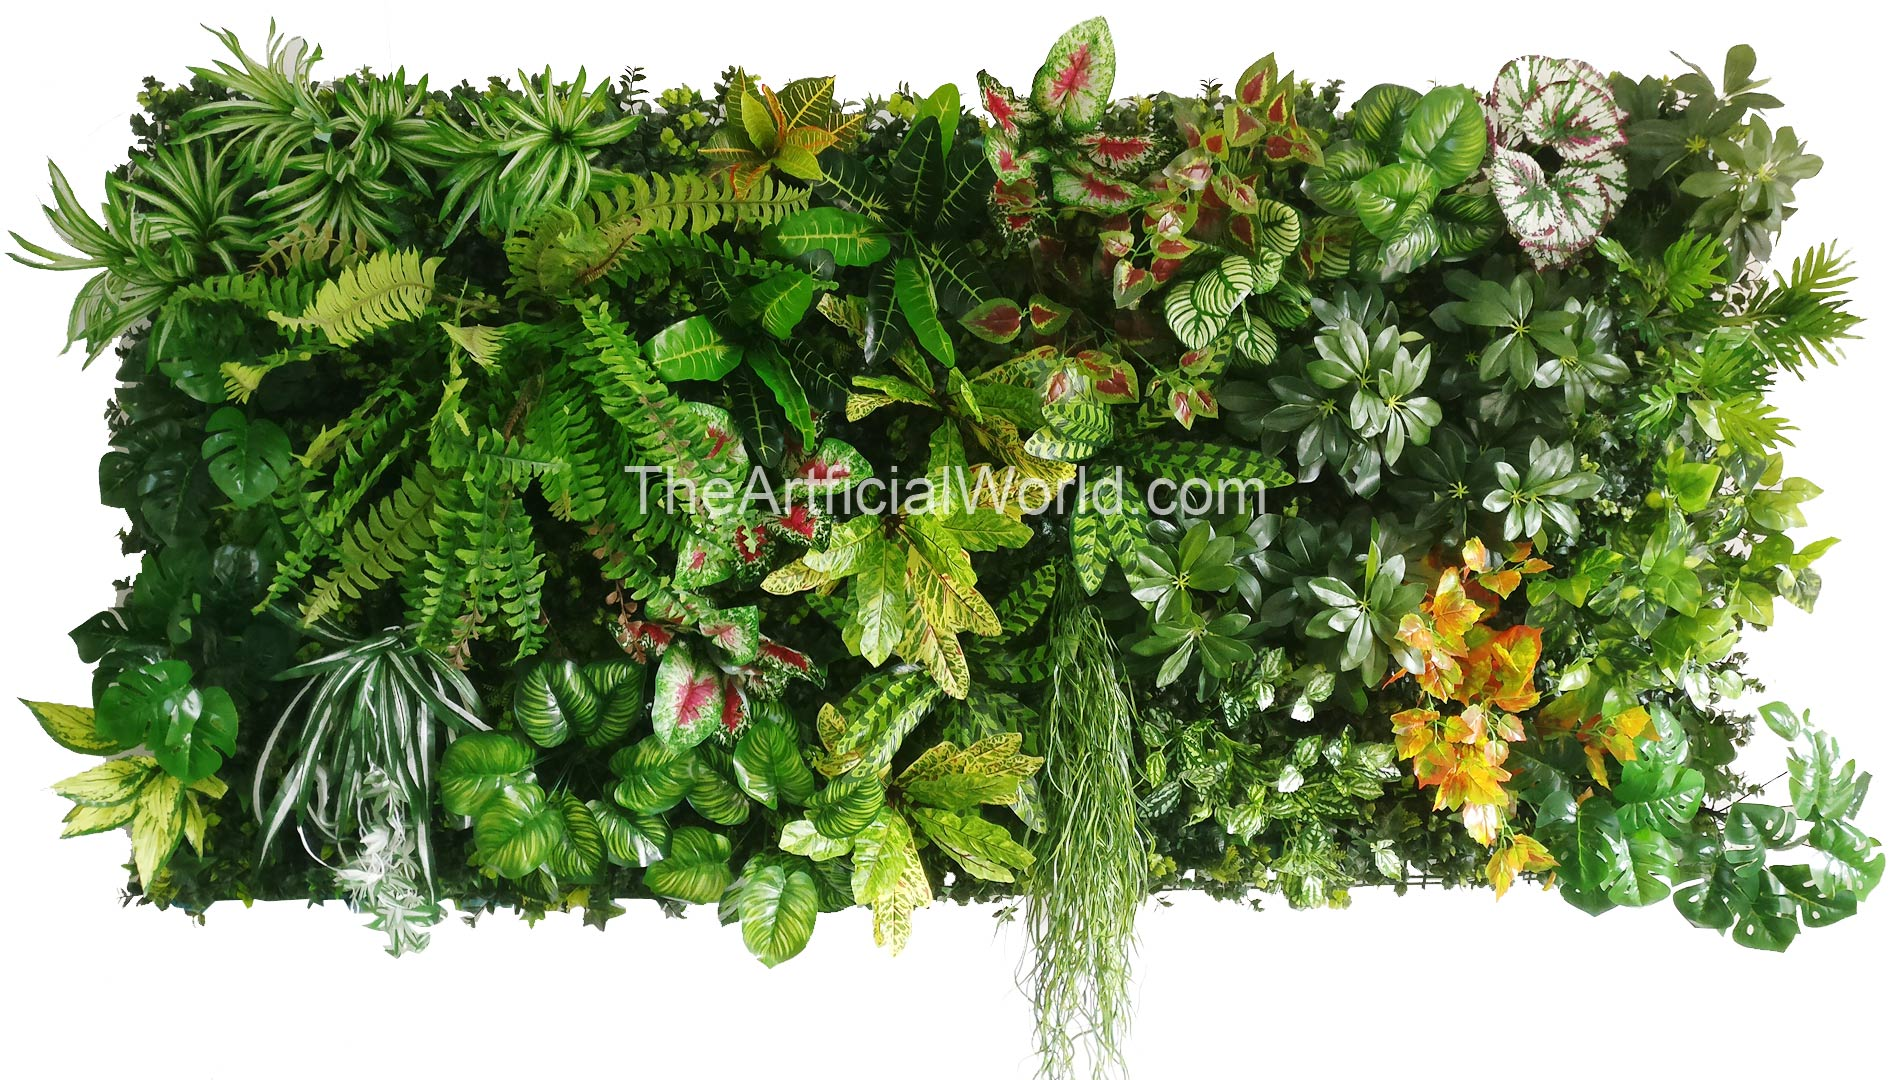 artificial living wall 80*40